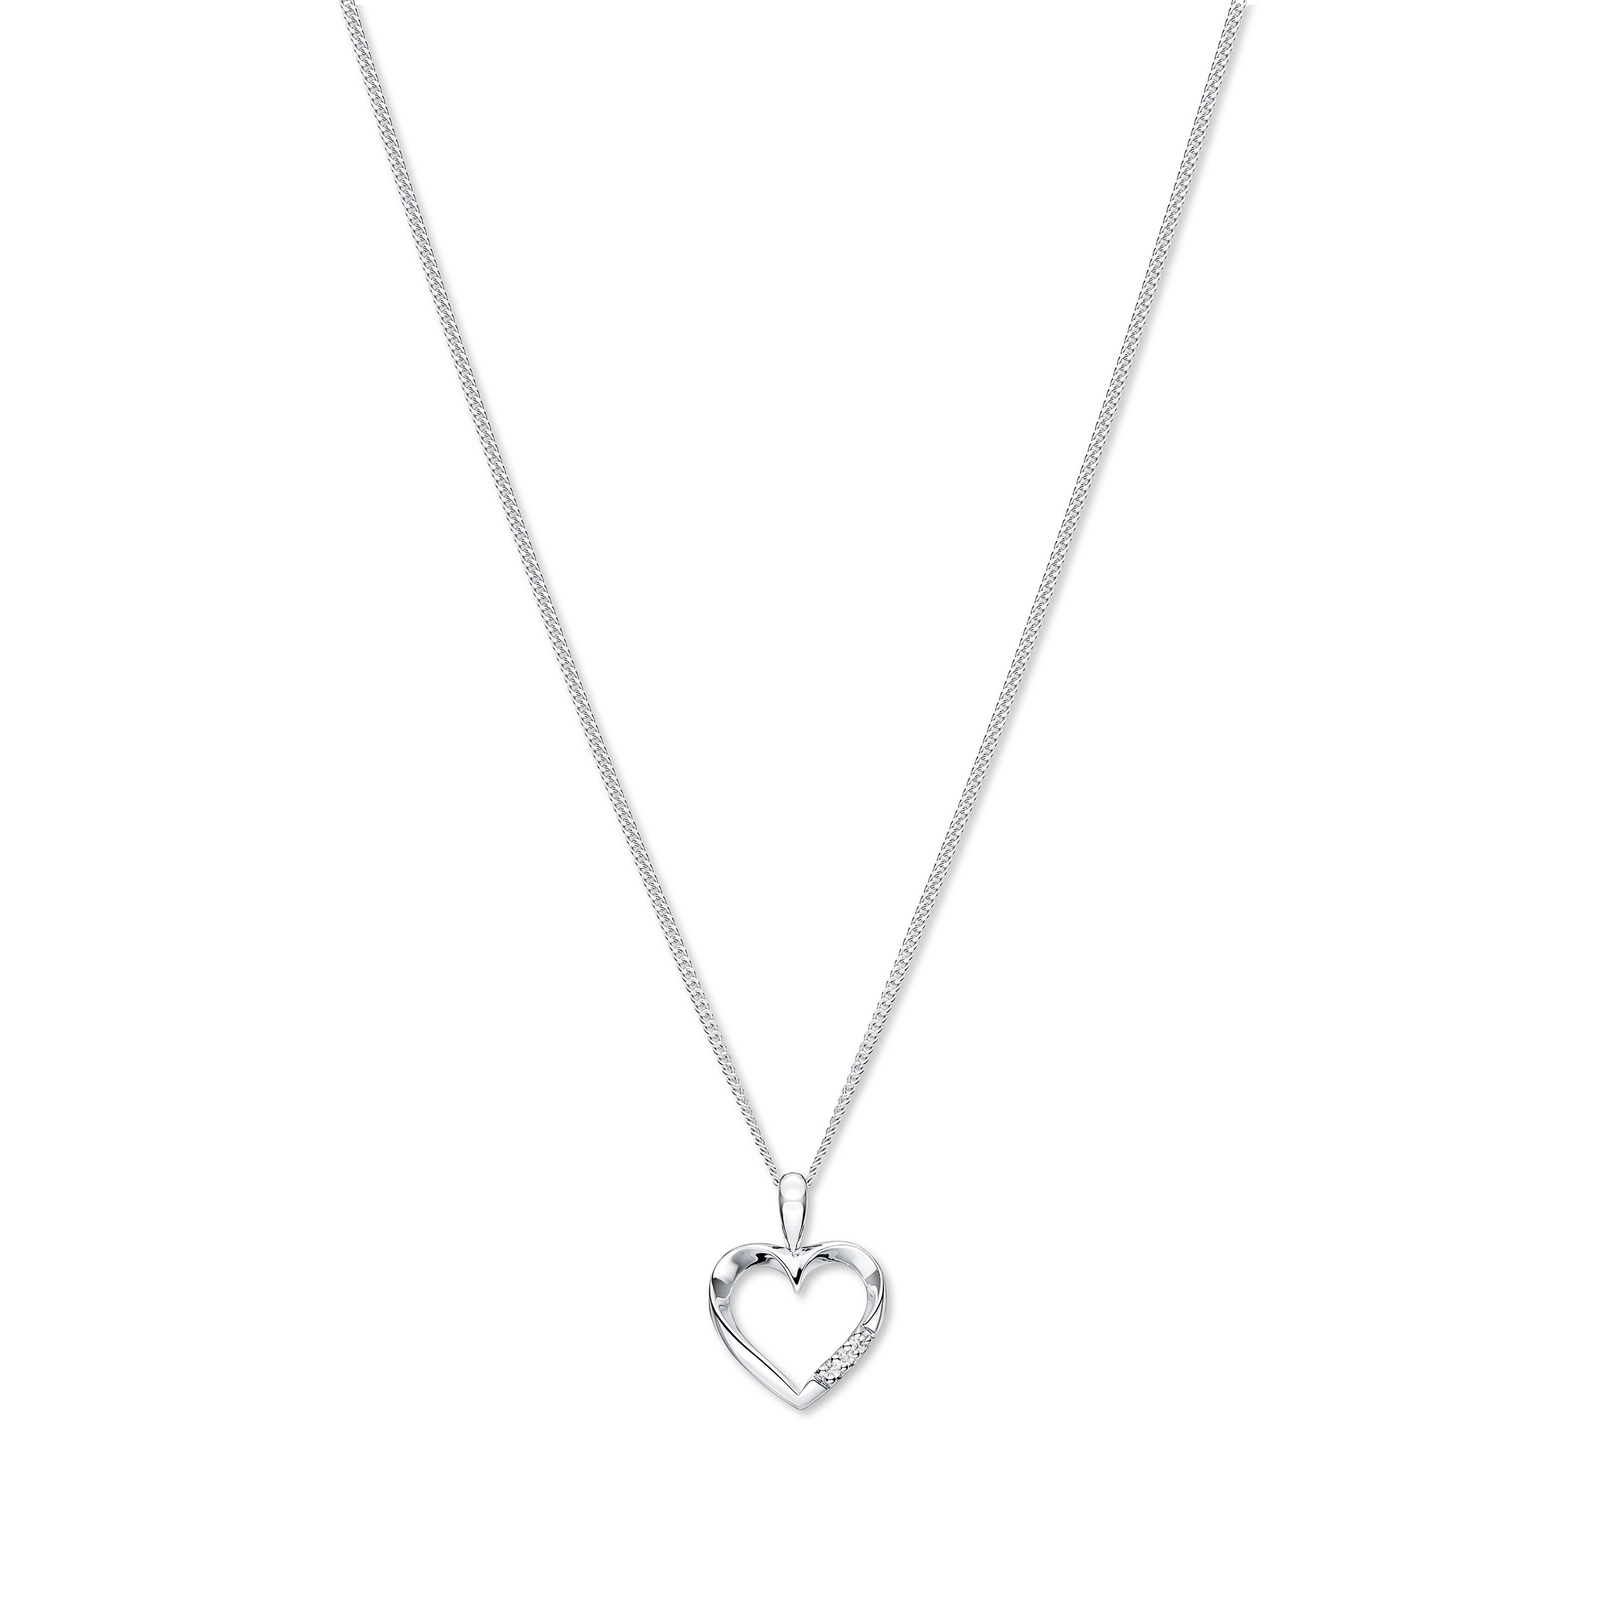 9ct white gold diamond heart pendant necklaces jewellery 9ct white gold diamond heart pendant mozeypictures Images